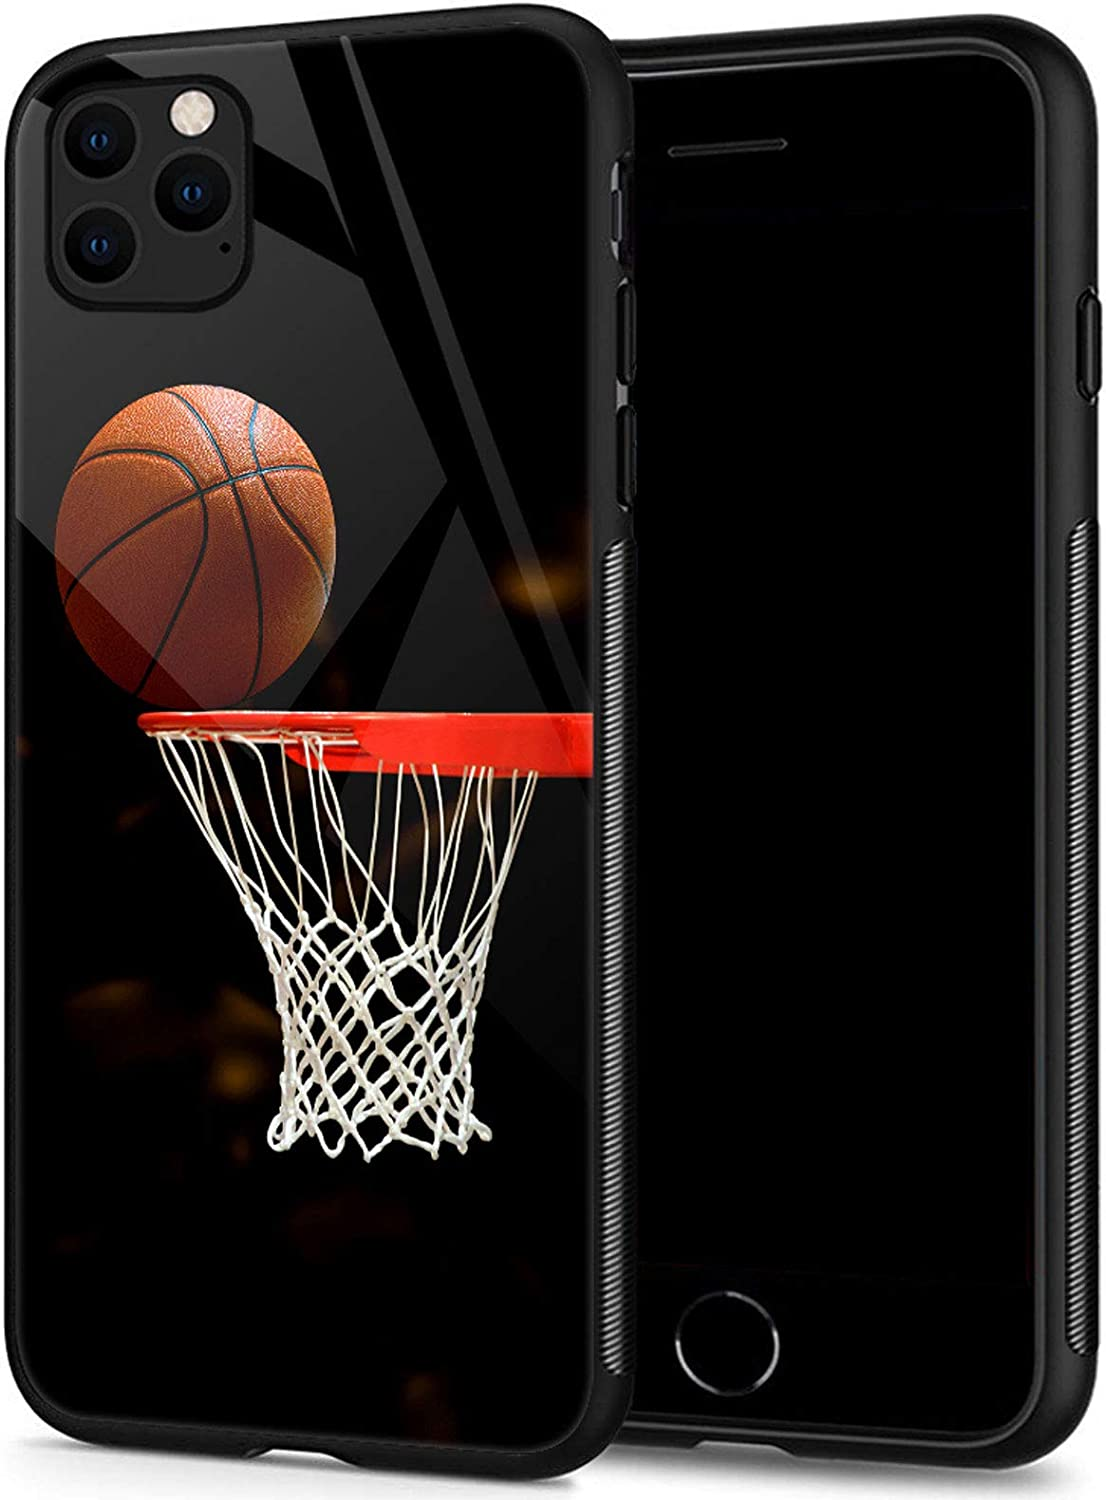 TnXee Compatible with Case for iPhone 12, Basketball Organic Glass Mobile Phone Case Pattern Mobile Phone Shell Black Cover Case Compatible with Case for iPhone 12/12 pro 6.1-inch